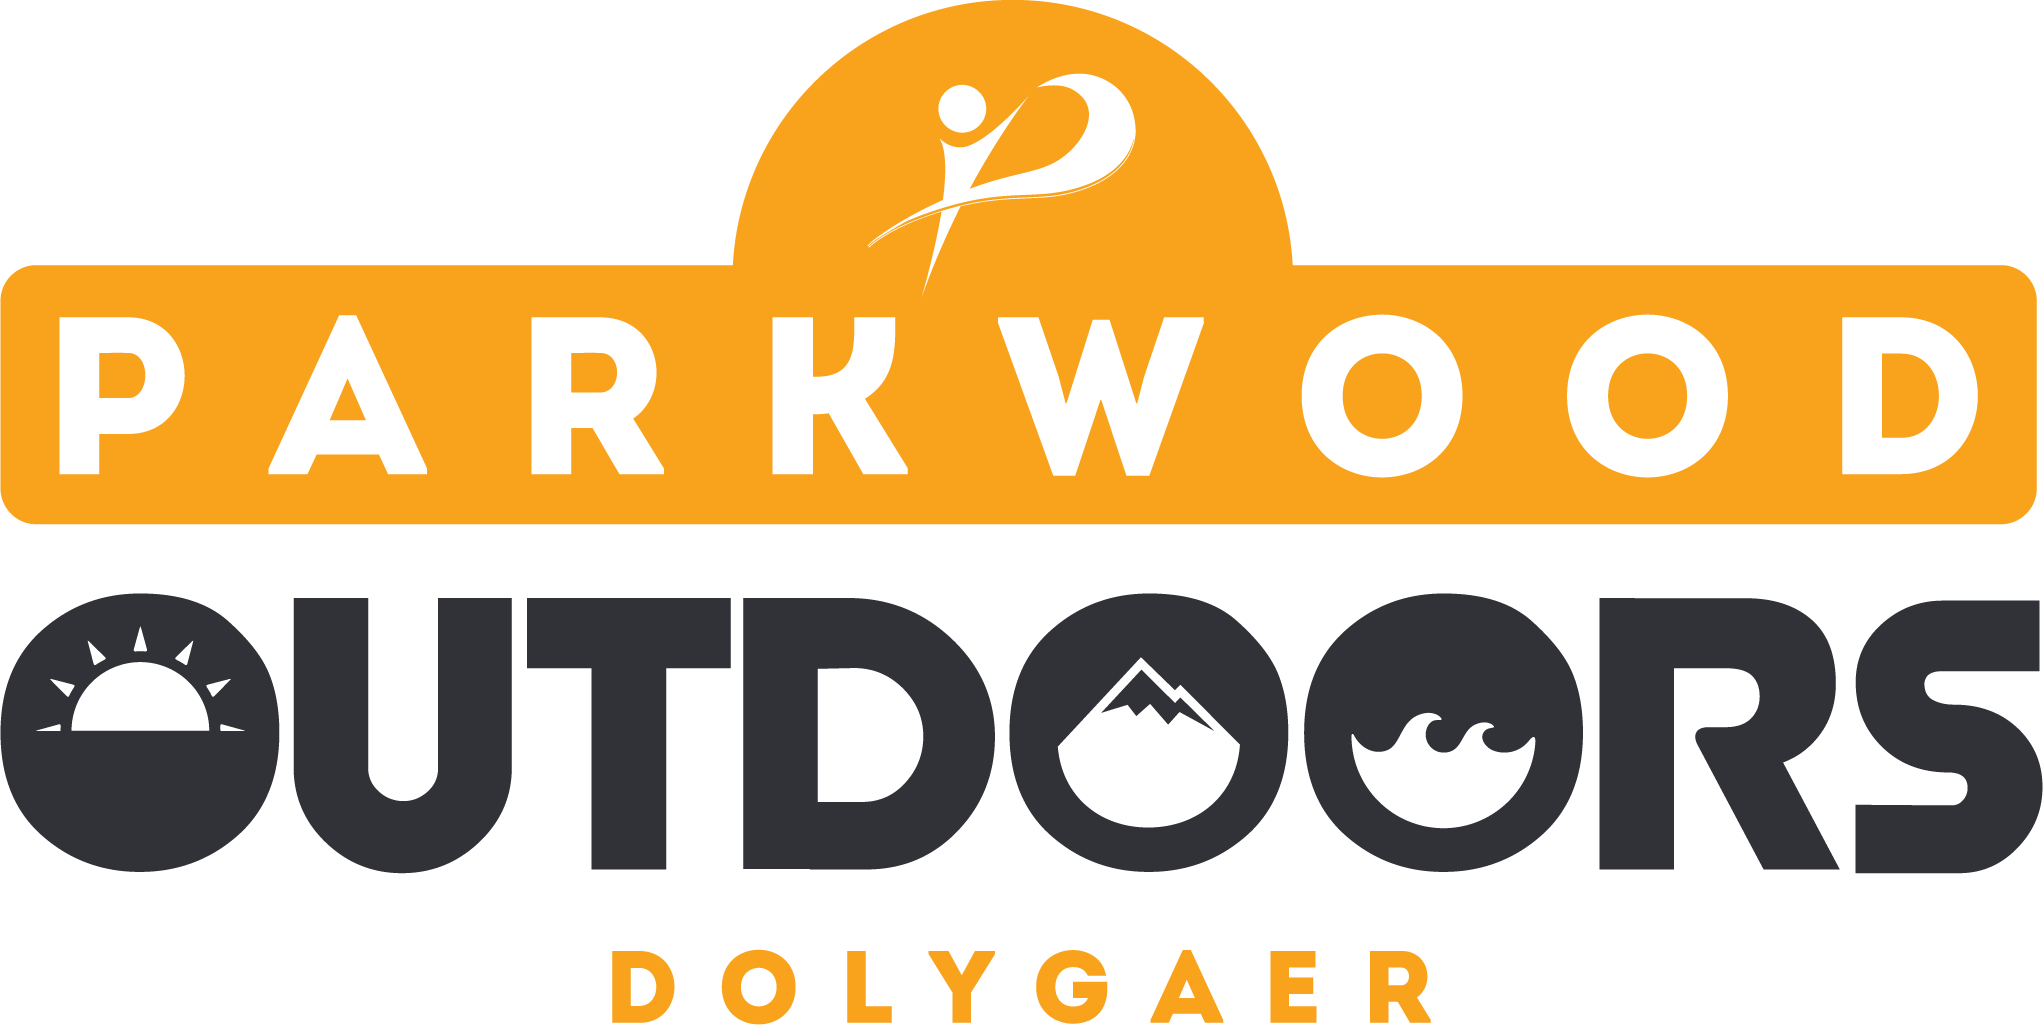 parkwood-outdoors-logo-light